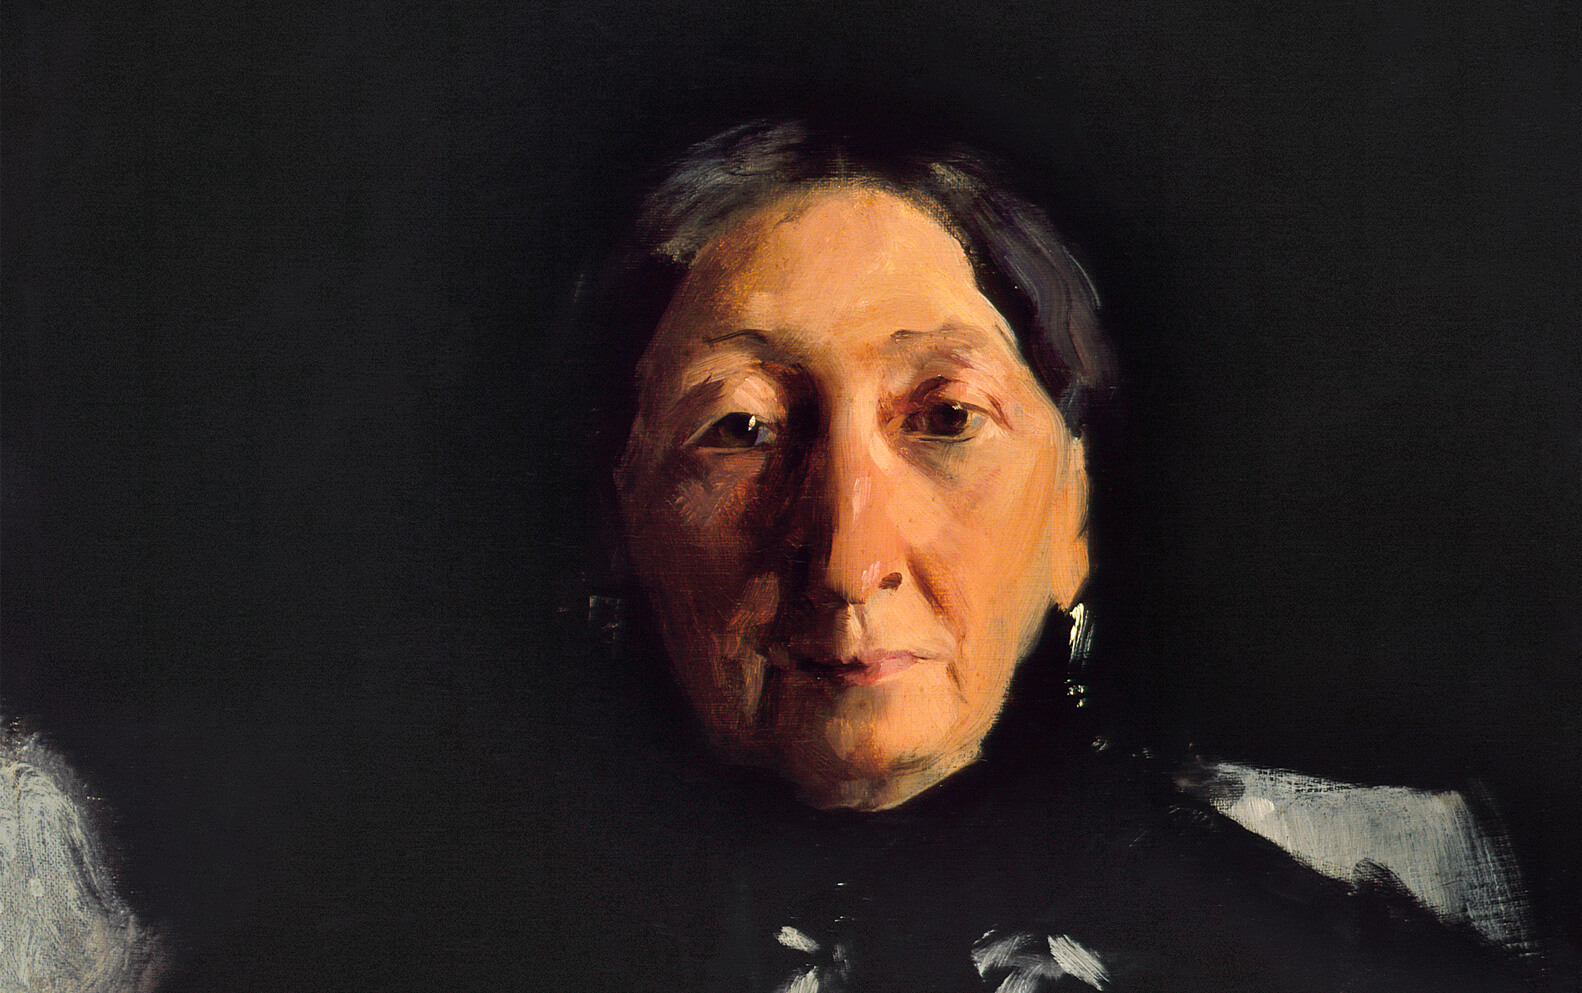 Painting of older woman's face with black background.